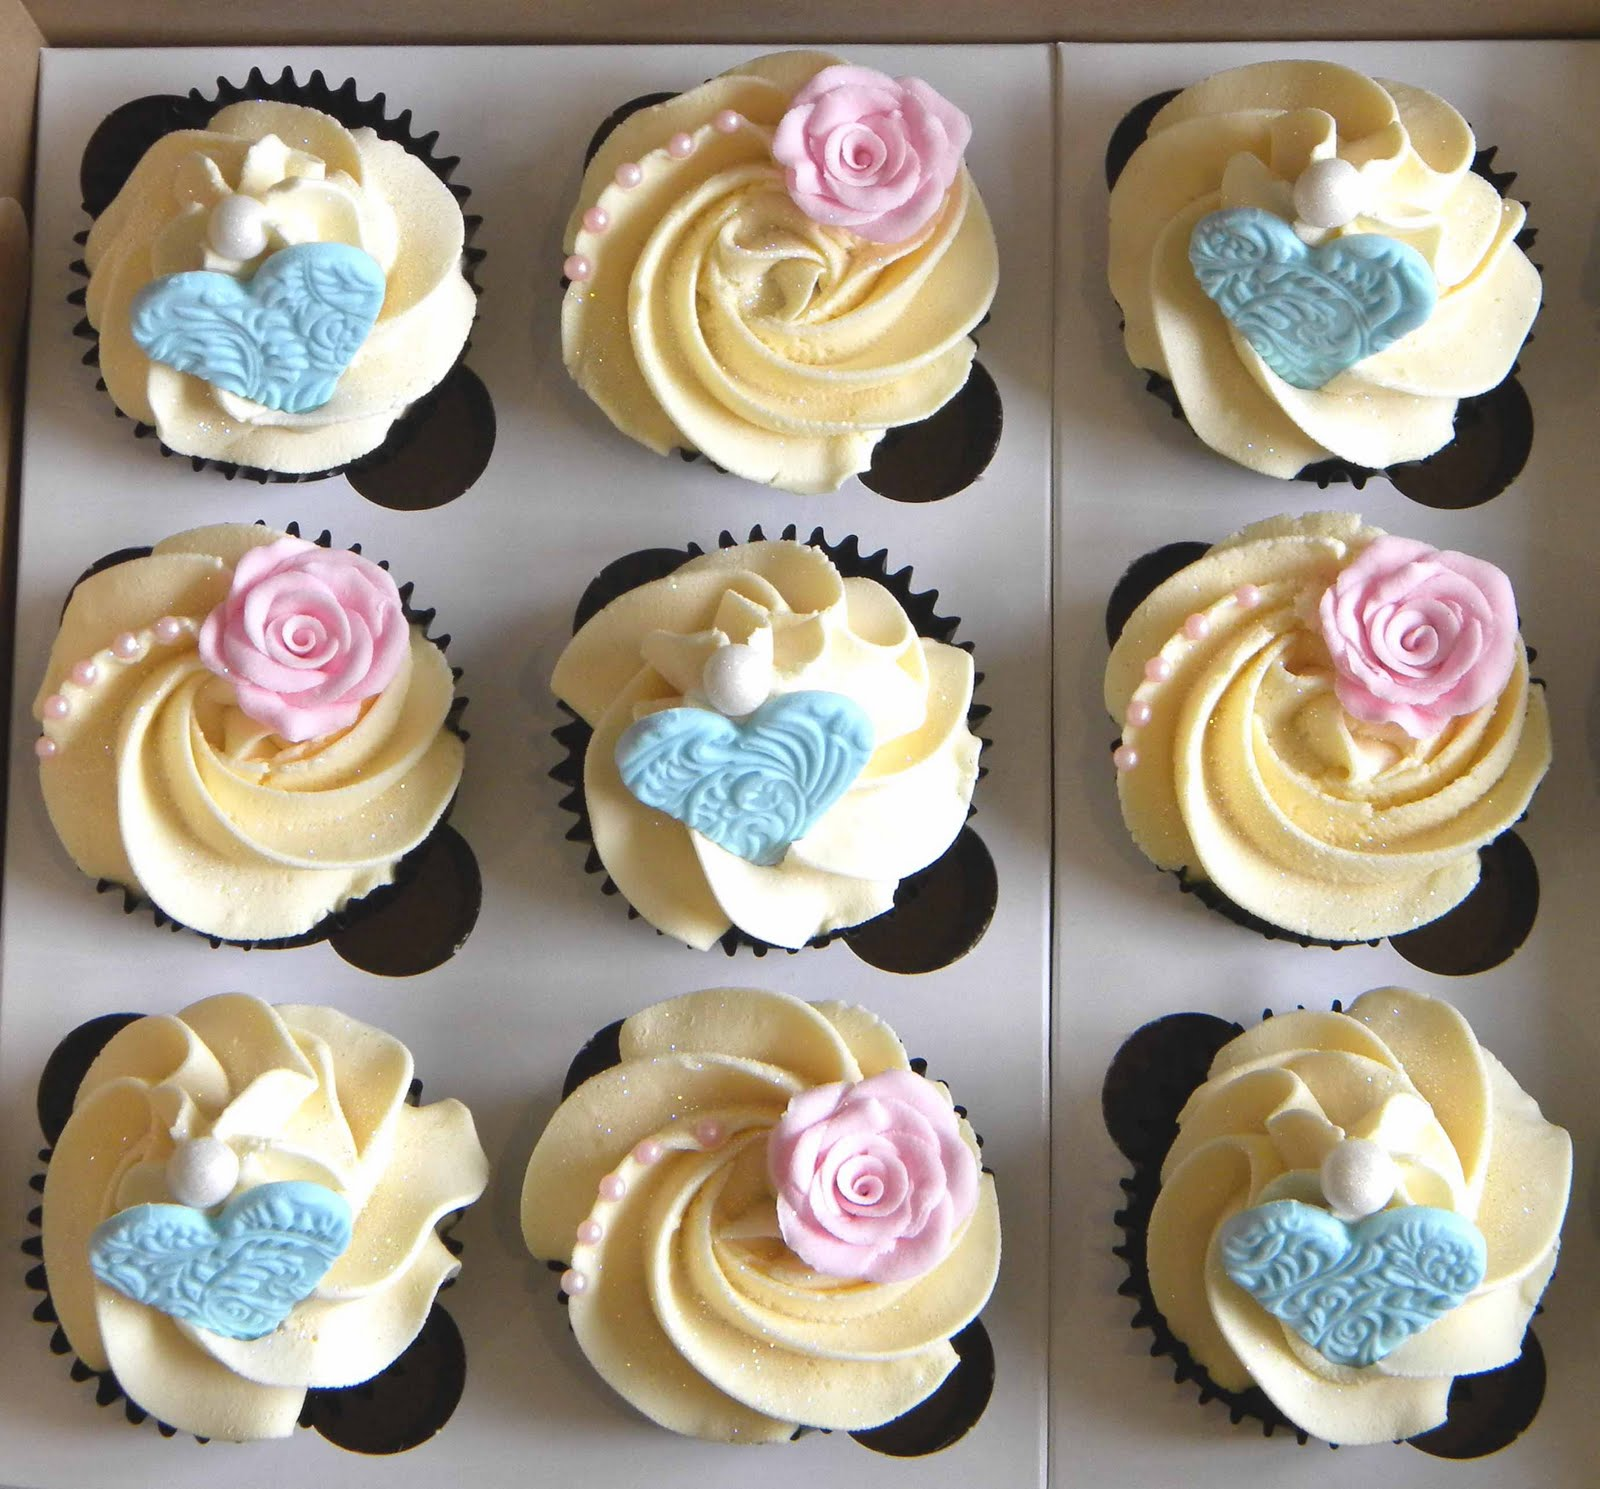 Cupcake Decorating Ideas With Buttercream Icing : BITE ME CUPCAKES and WRAPPERS: Birthday cupcakes